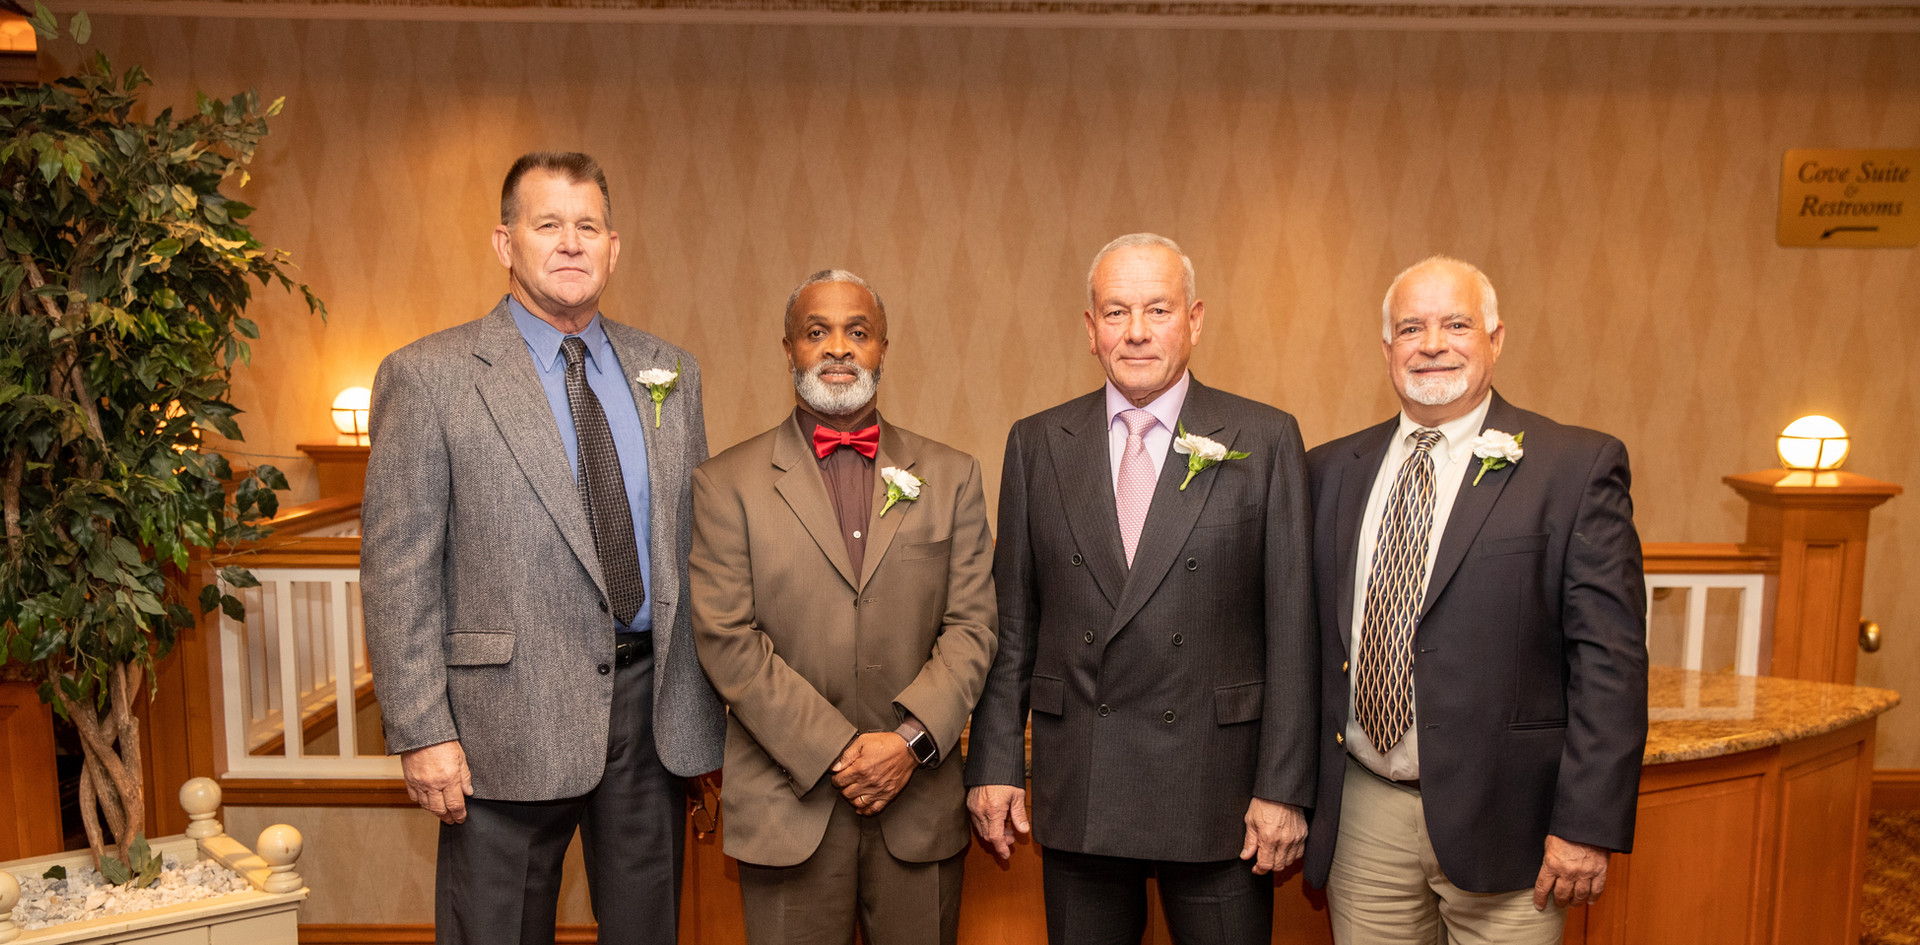 Honorees Tim Wagner, Harry Welfare, Felix Rodriguez, and Steve Annunziato.  (photo by Josh Molaver)